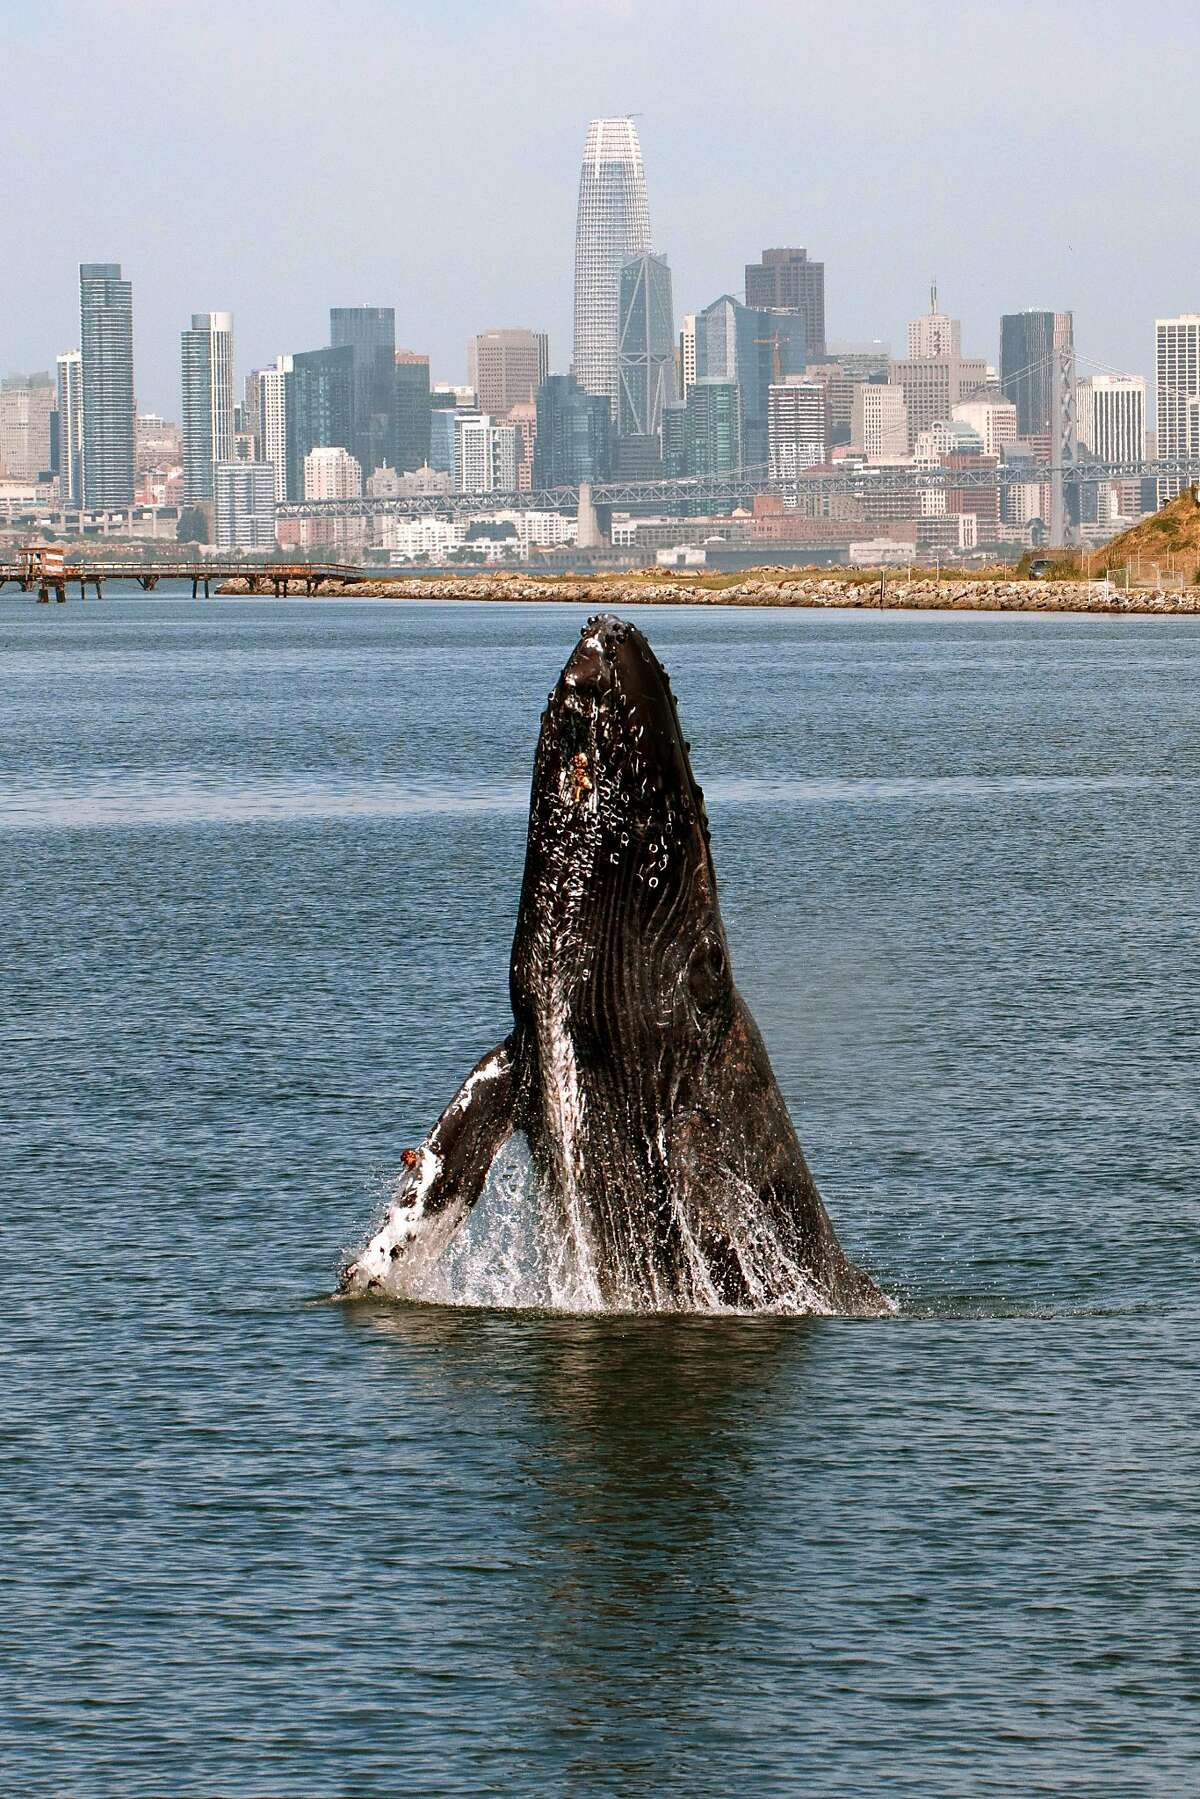 RESTRICTIONS - PLEASE REACH OUT TO SF CHRONICLE BEFORE PUBLISHING PHOTO A humpback whale breaches in the San Francisco Bay off Ferry Point near the USS Hornet - Sea, Air and Space Museum in Alameda, California on Wednesday, June 12, 2019. Photo by Susie Kelly